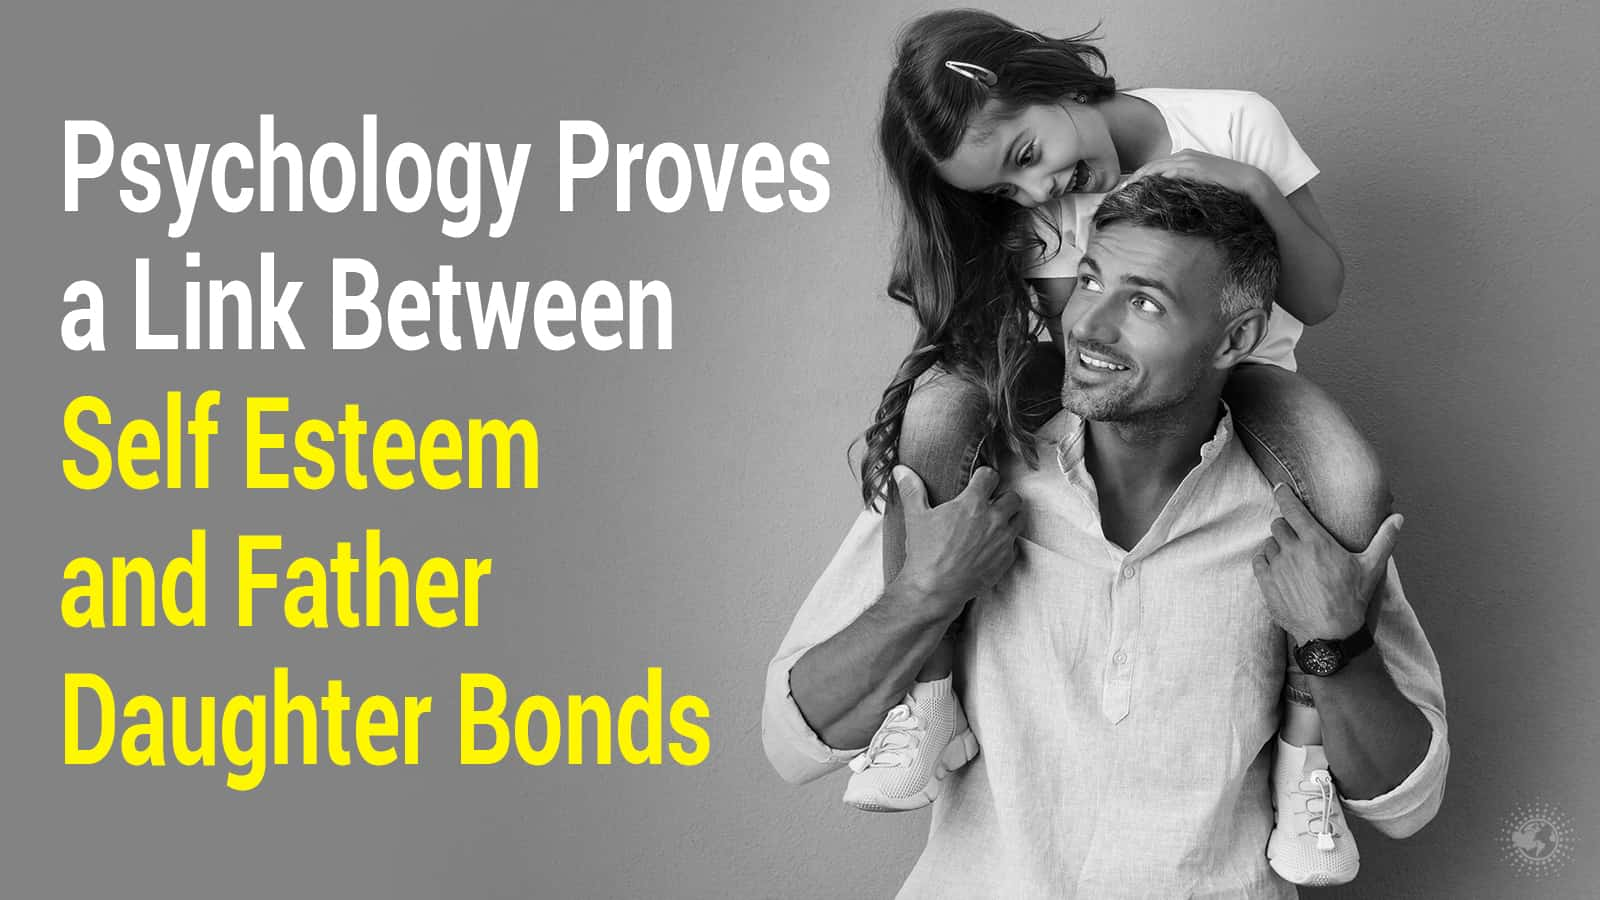 Psychology Proves a Link Between Self Esteem and Father Daughter